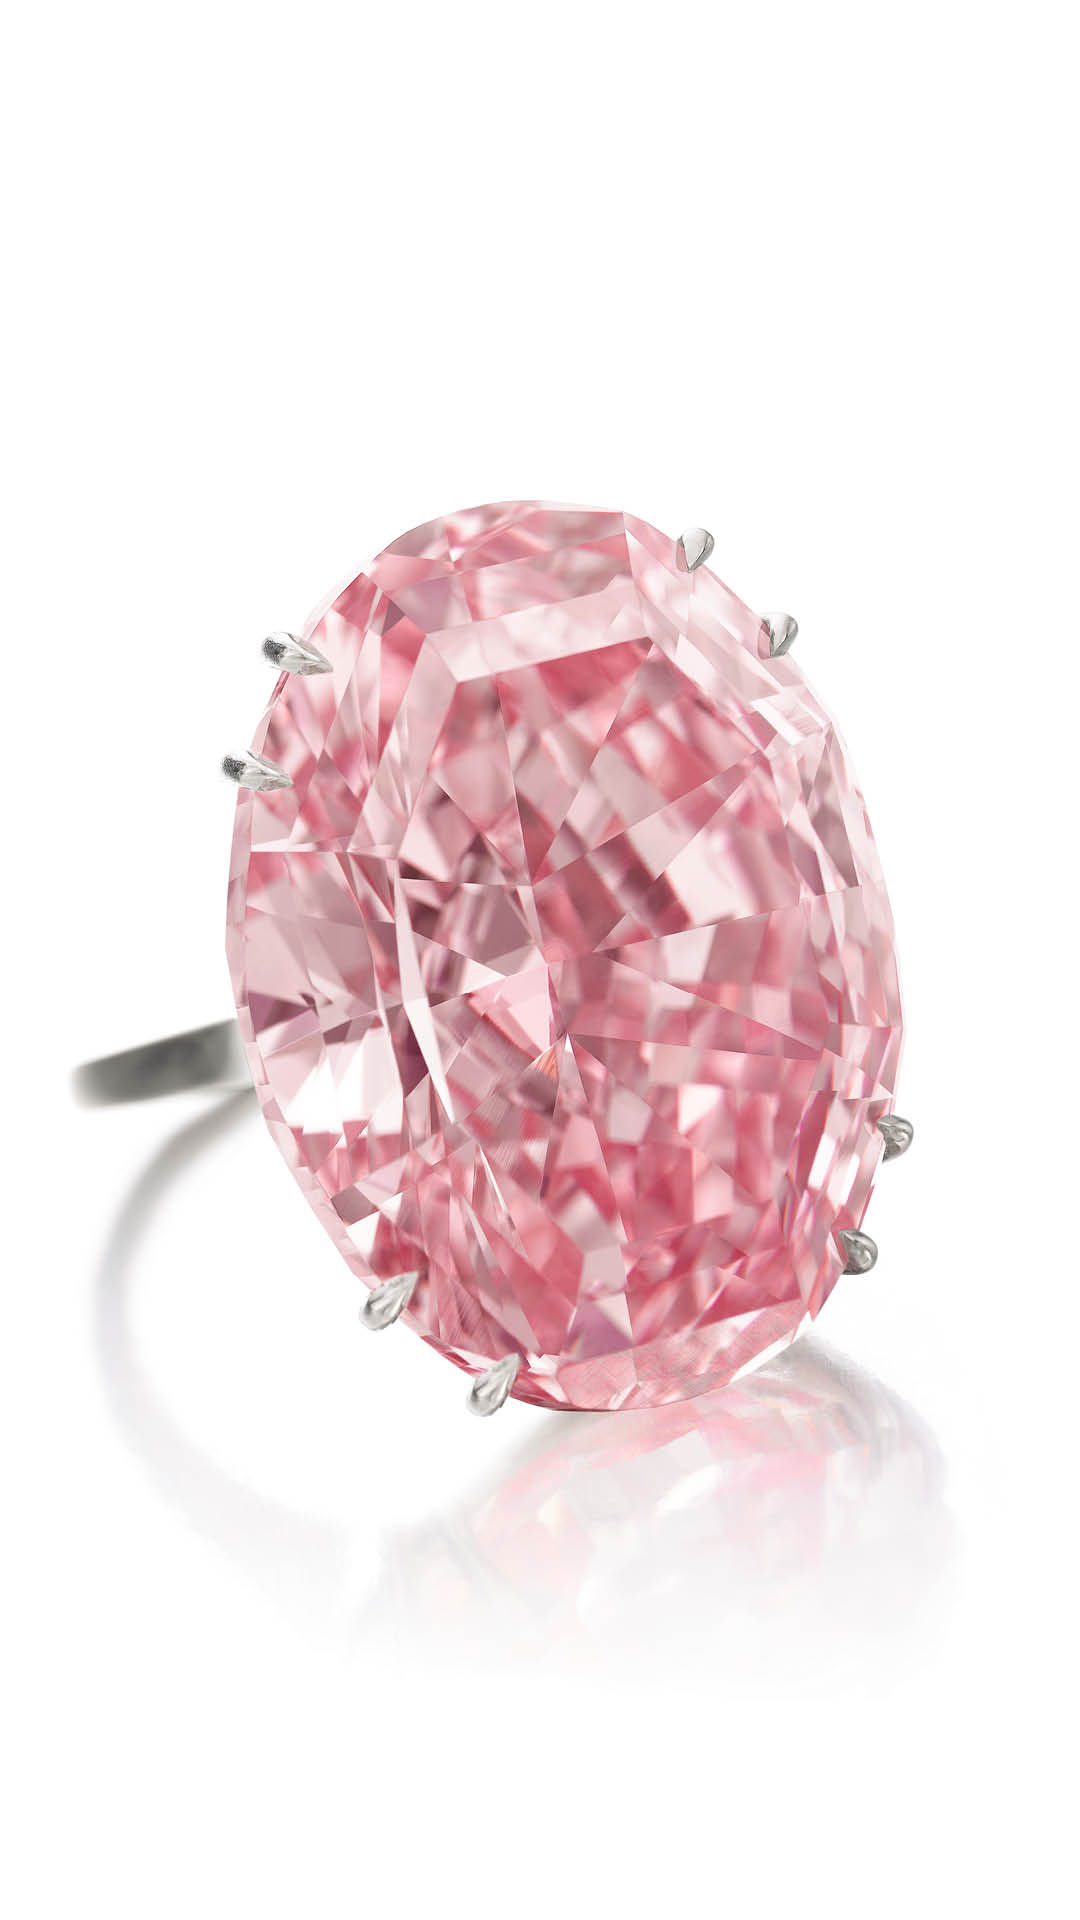 Pink Star Most Expensive Diamond Sothebys